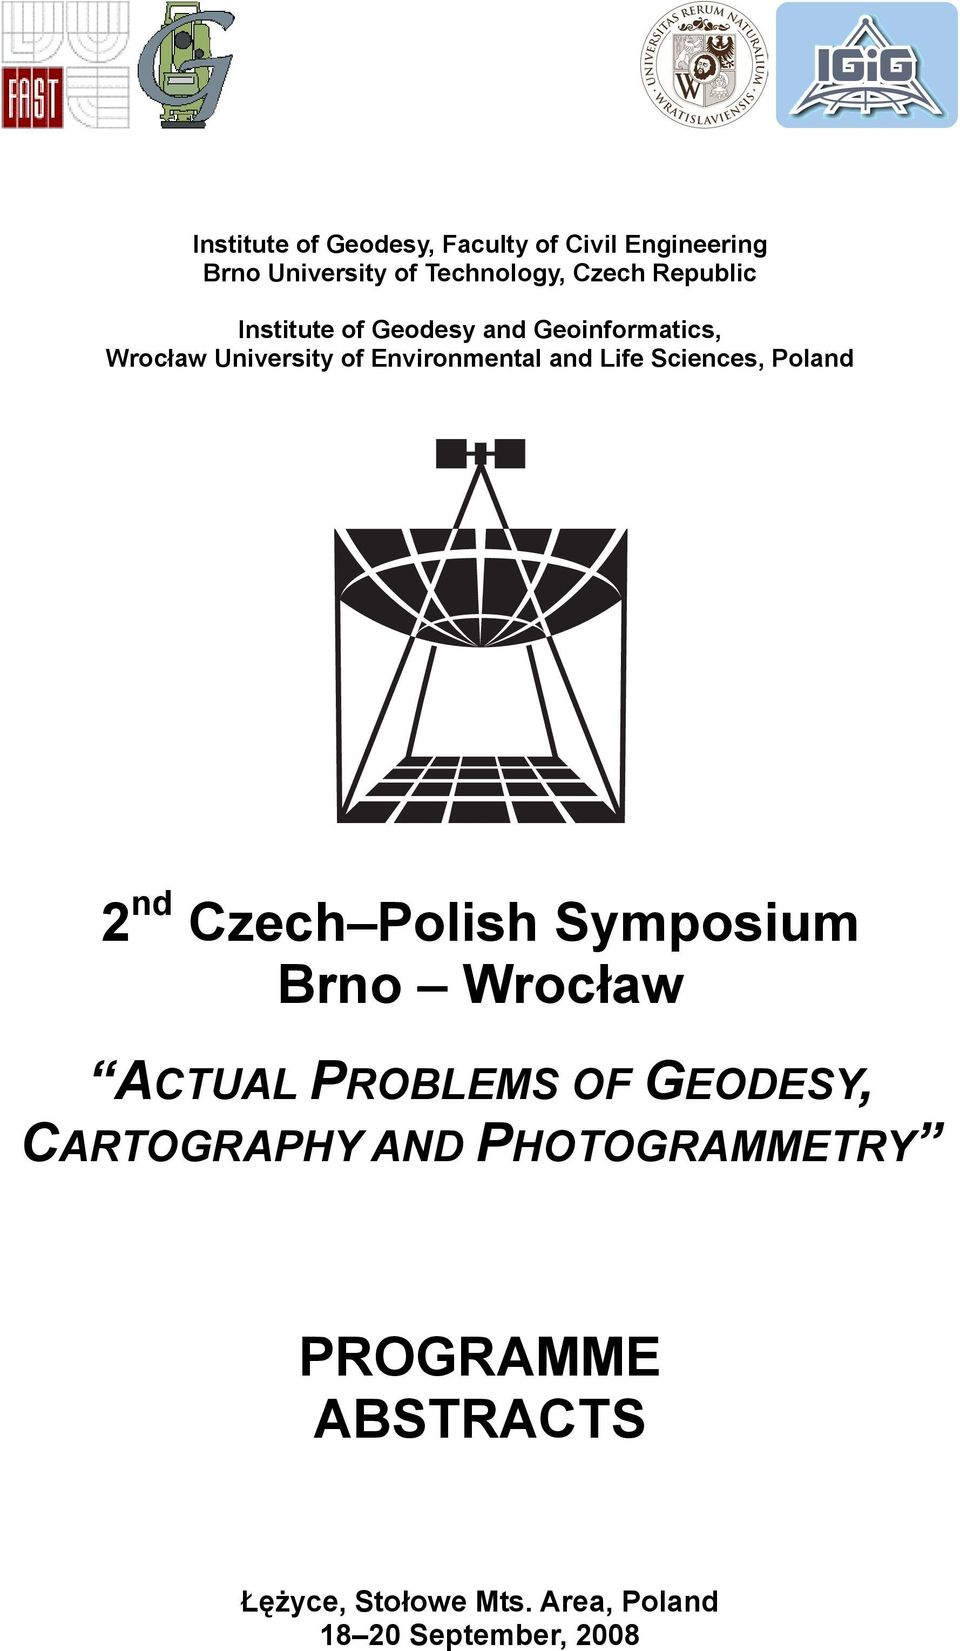 Poland 2 nd Czech Polish Symposium Brno Wrocław ACTUAL PROBLEMS OF GEODESY, CARTOGRAPHY AND